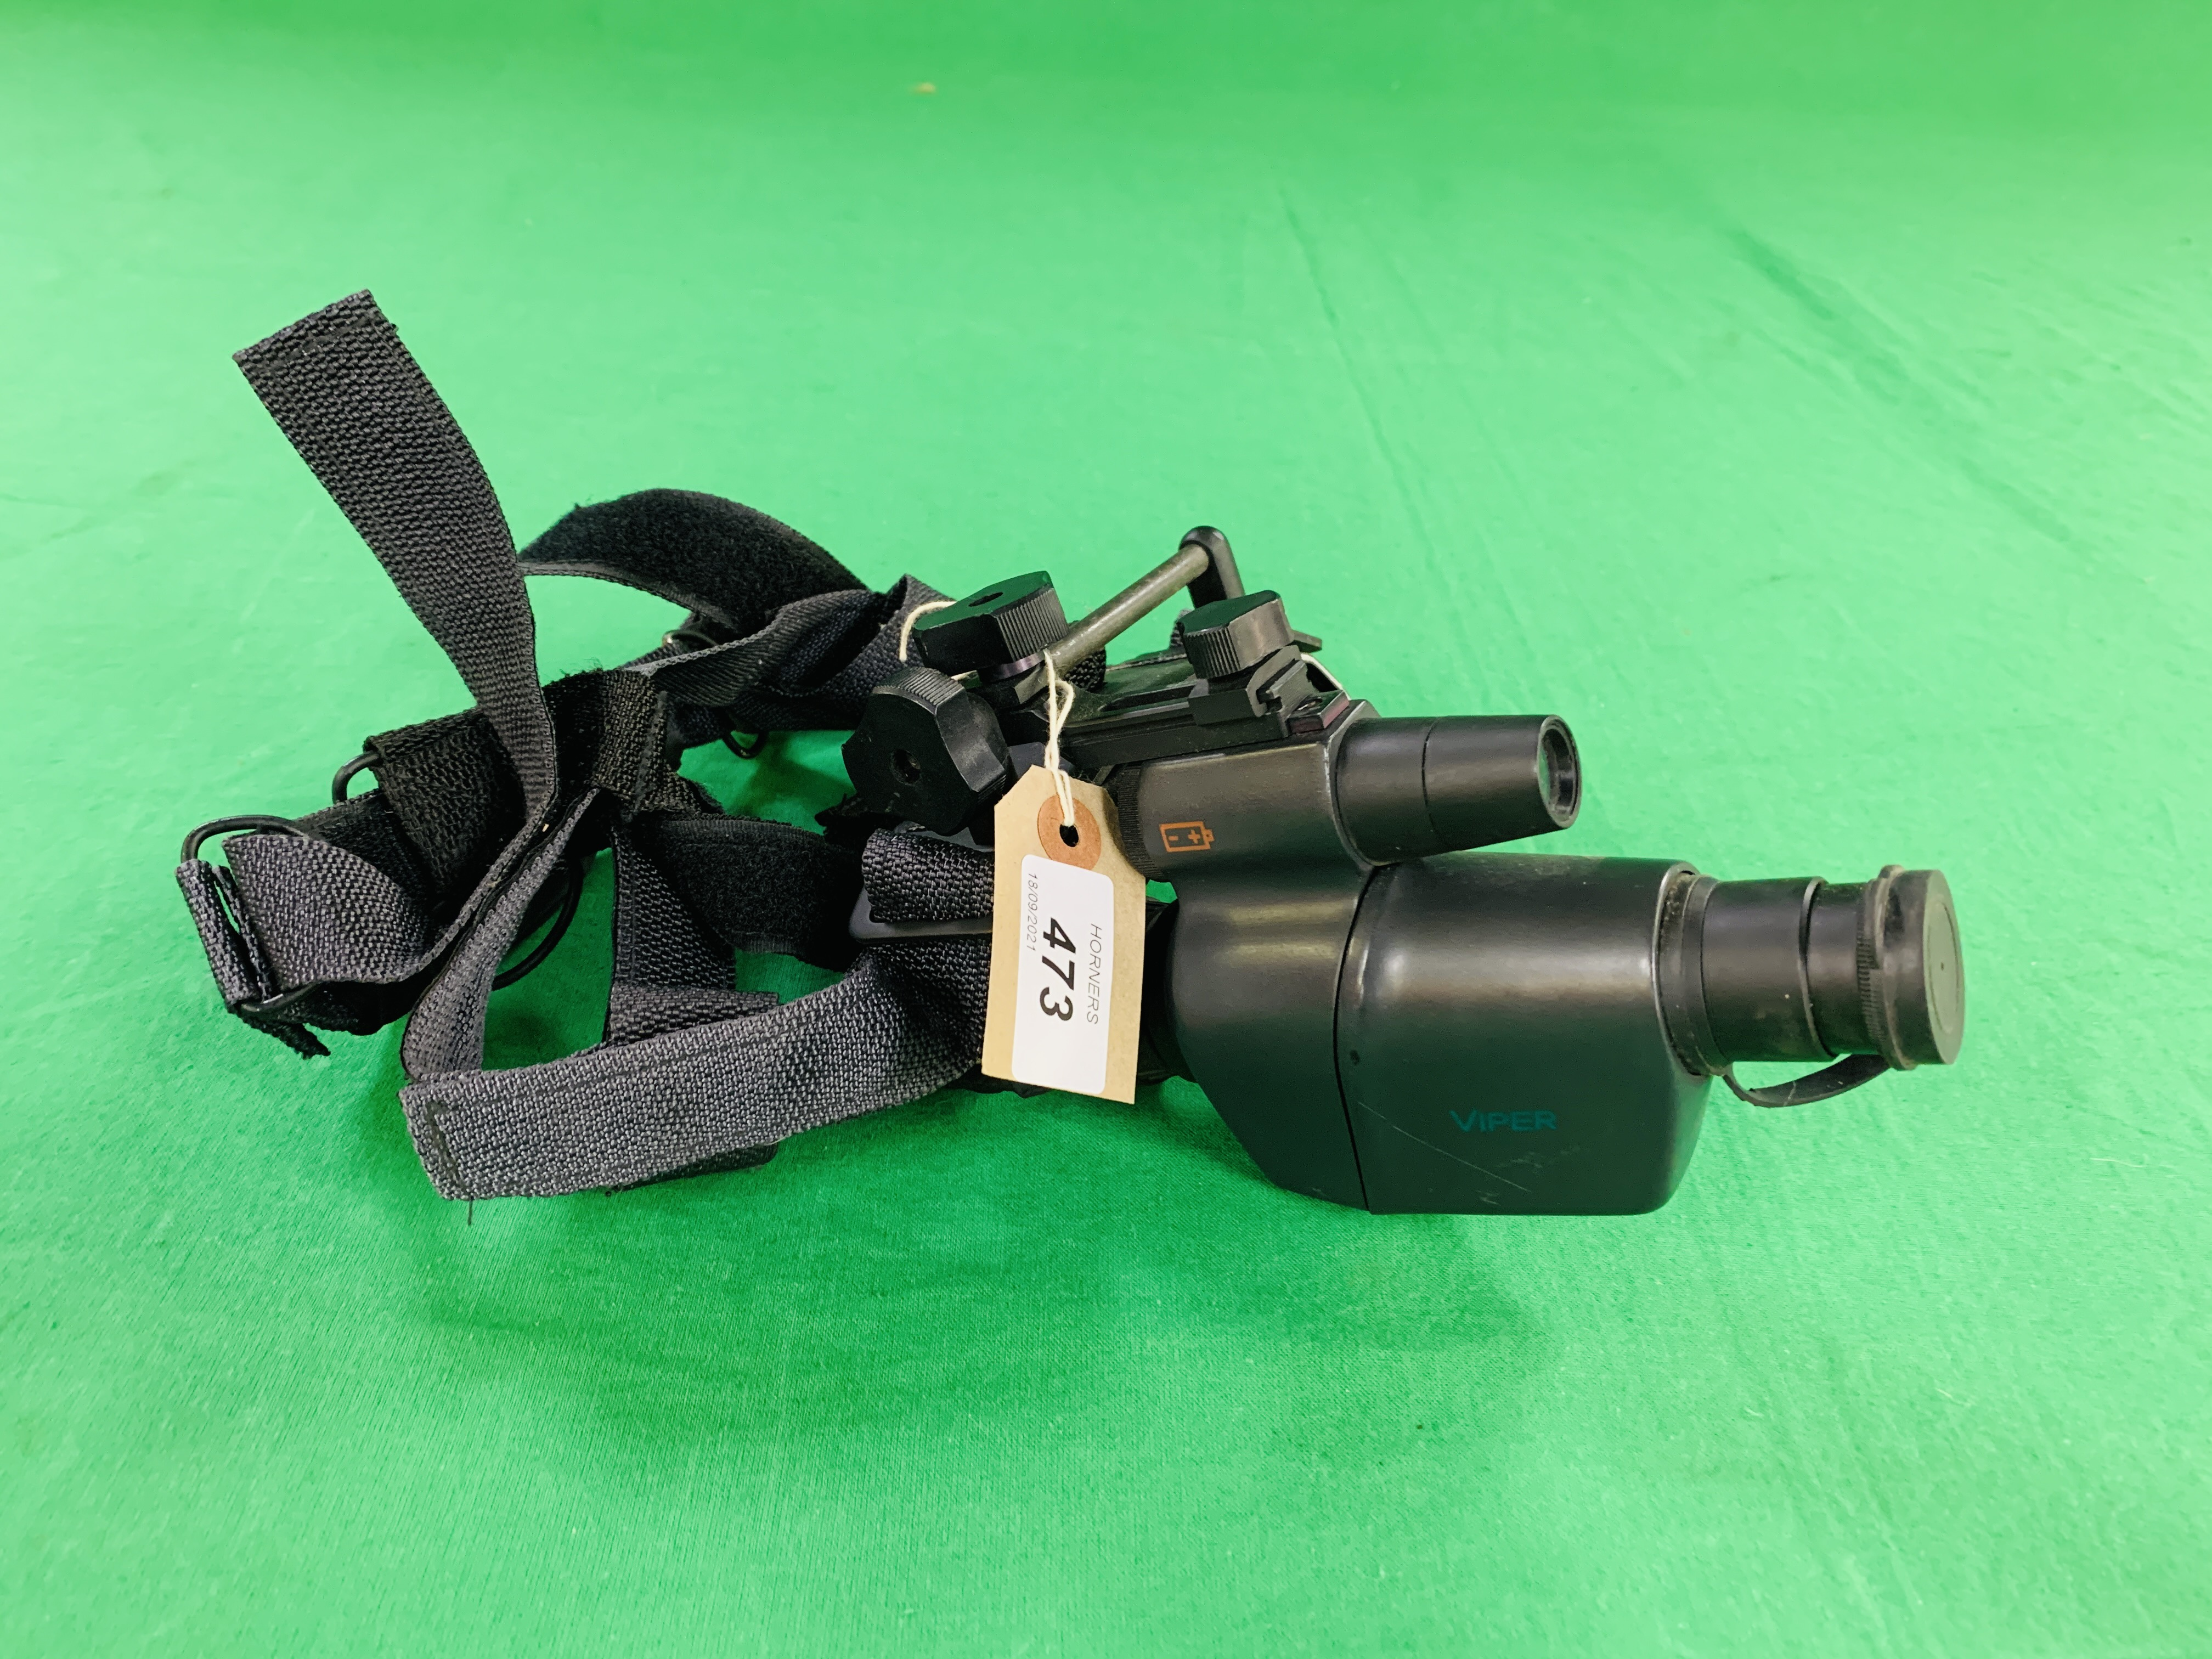 A ATN VIPER NIGHT VISION MONOCULAR INFERRED SITE WITH HEAD BAND